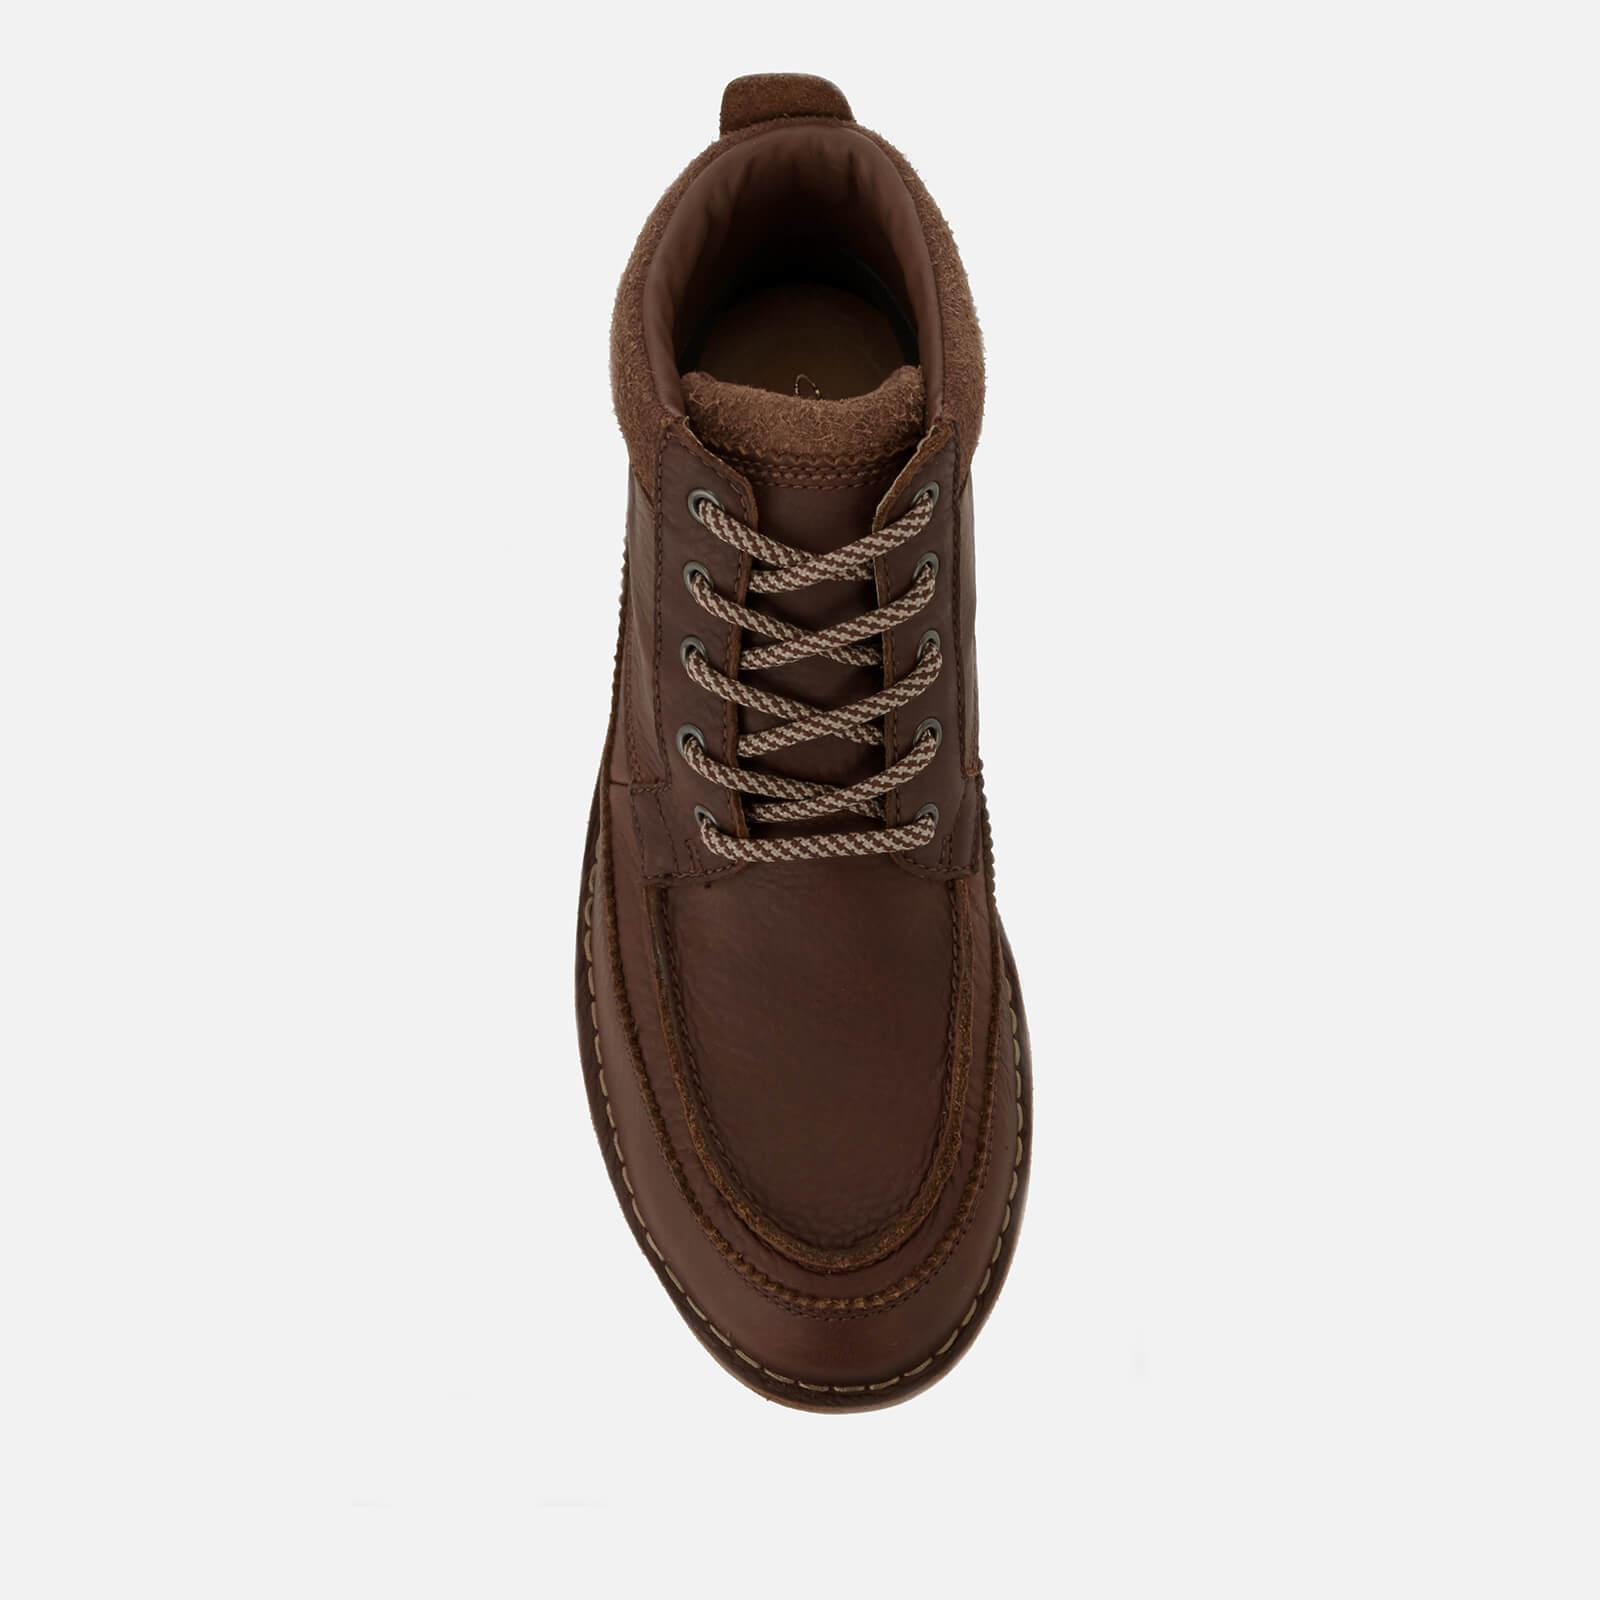 6899bc441c0 Clarks Korik Rise Gore-tex Leather Lace Up Boots in Brown for Men - Lyst